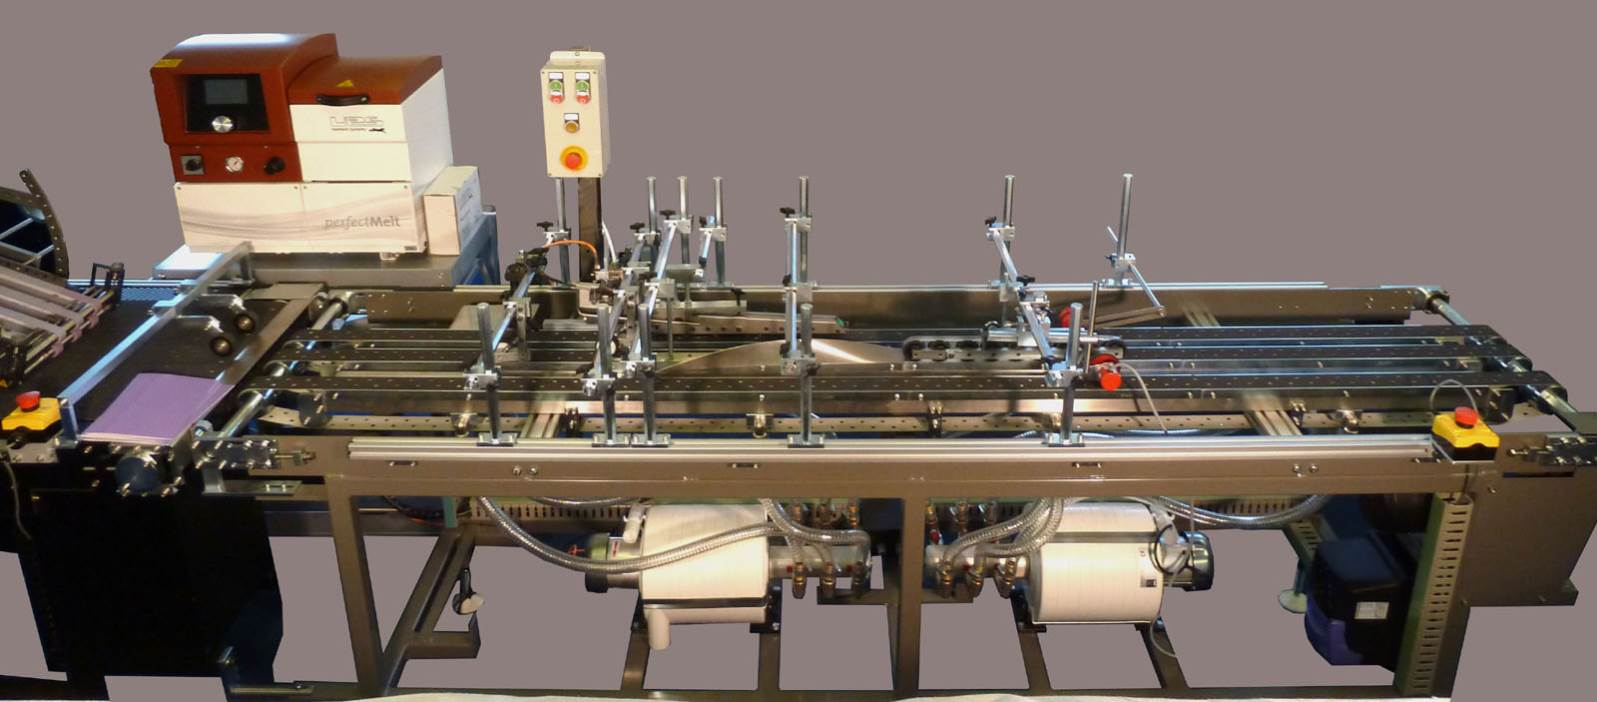 BES Octo Narrow Band Vacuum Conveyor. Ideal for Print finishing operations